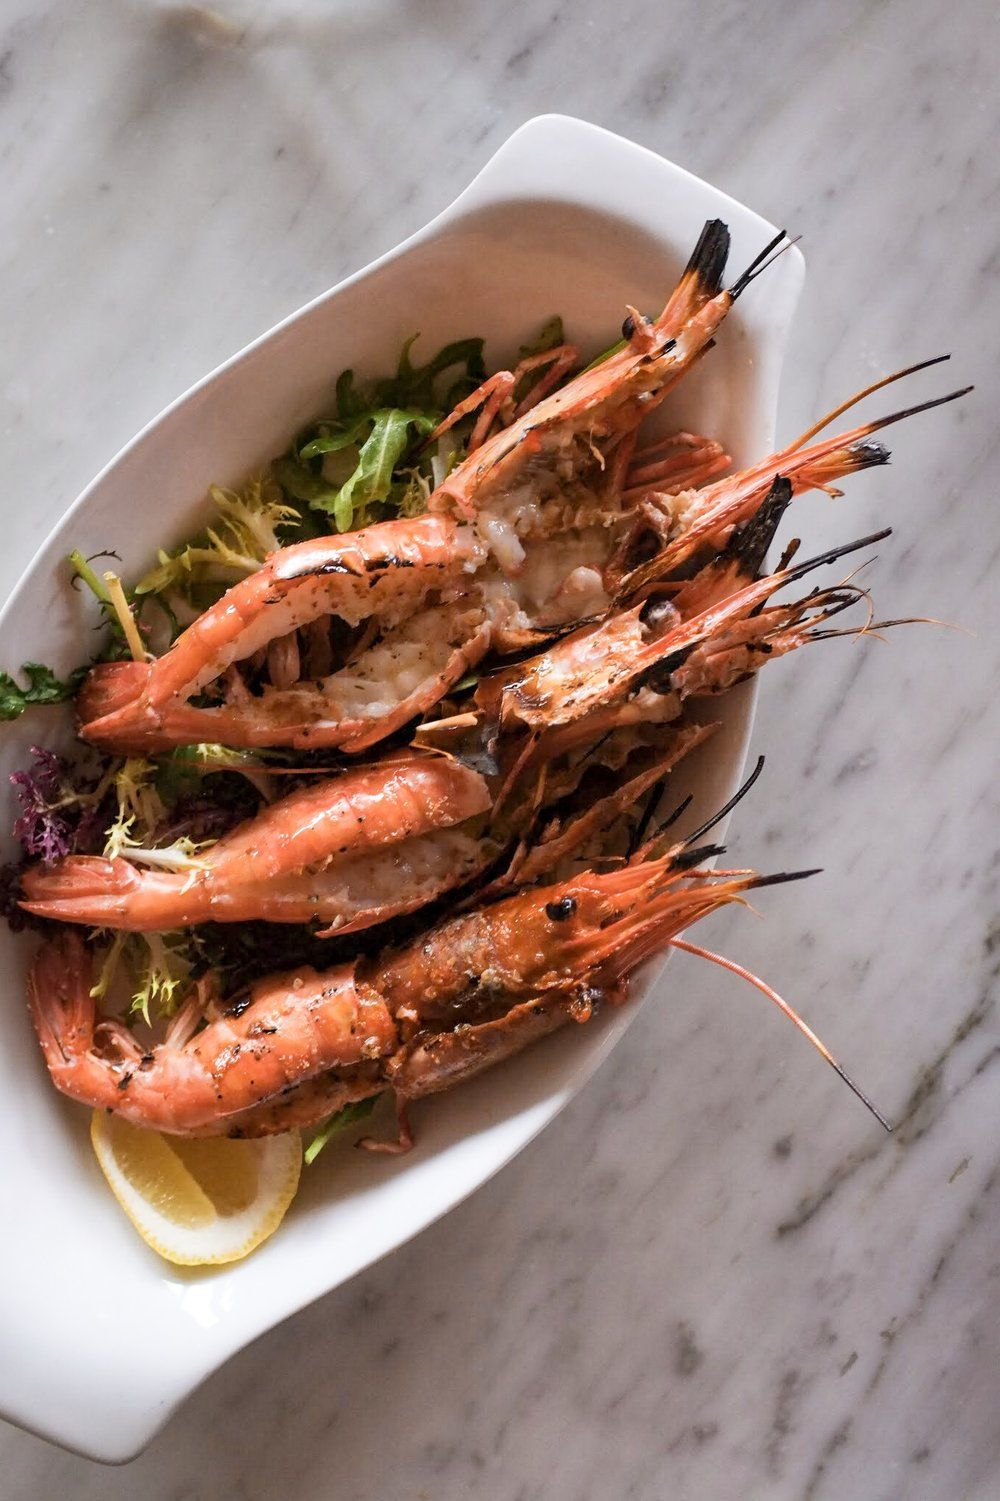 Grilled Santa Barbara Spot Prawns with Breadcrumbs, Greens, and Romagnola Olive Oil